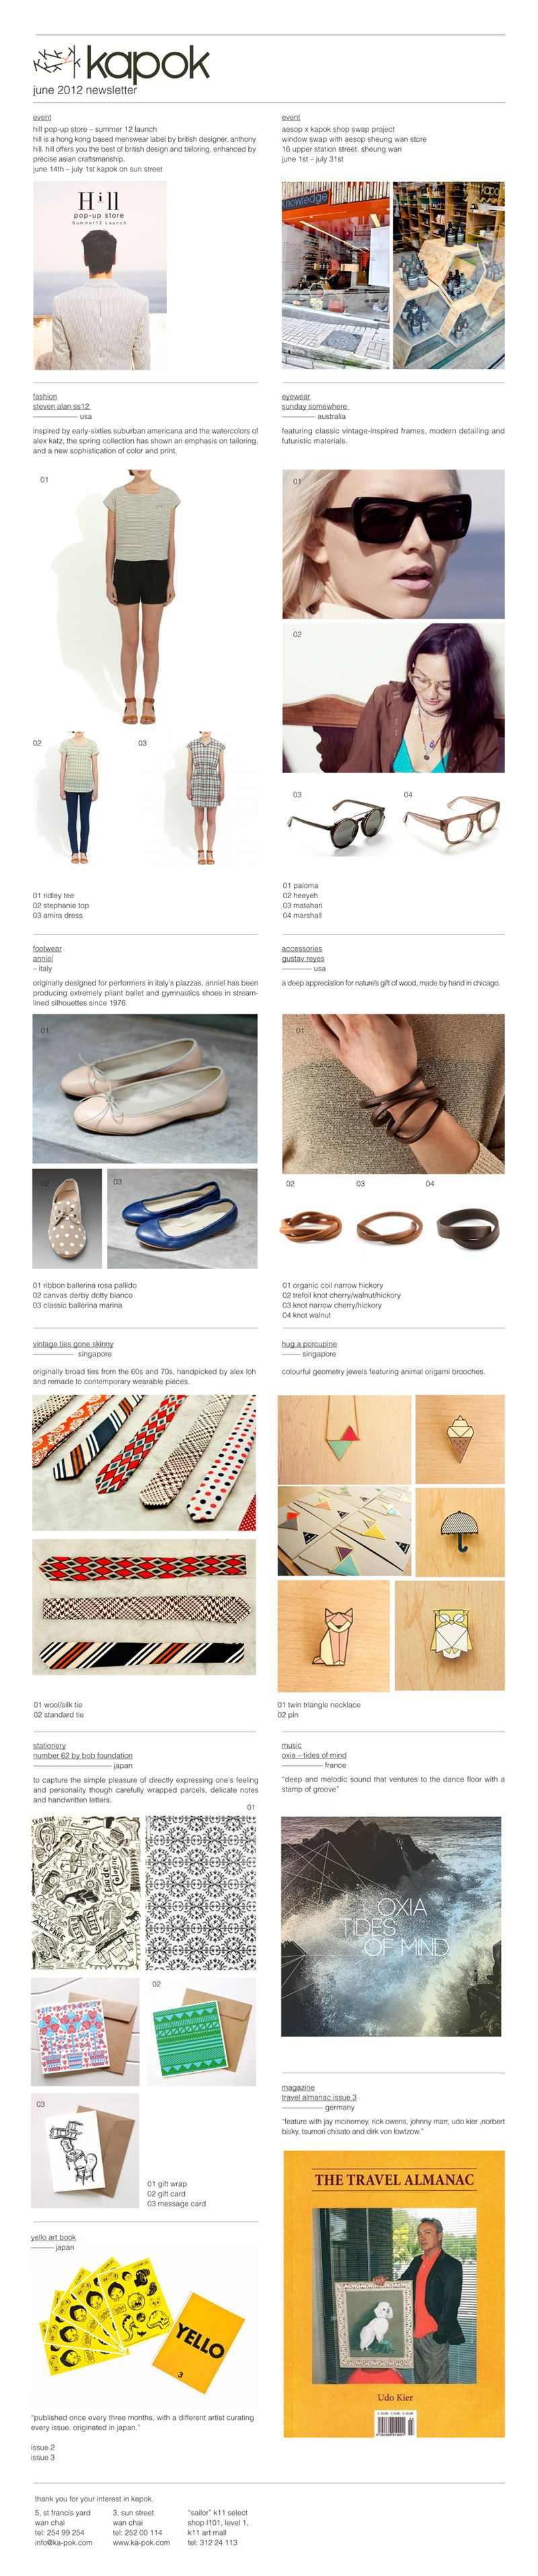 Newsletter 2012 JUNE - Lo-res(Customer)